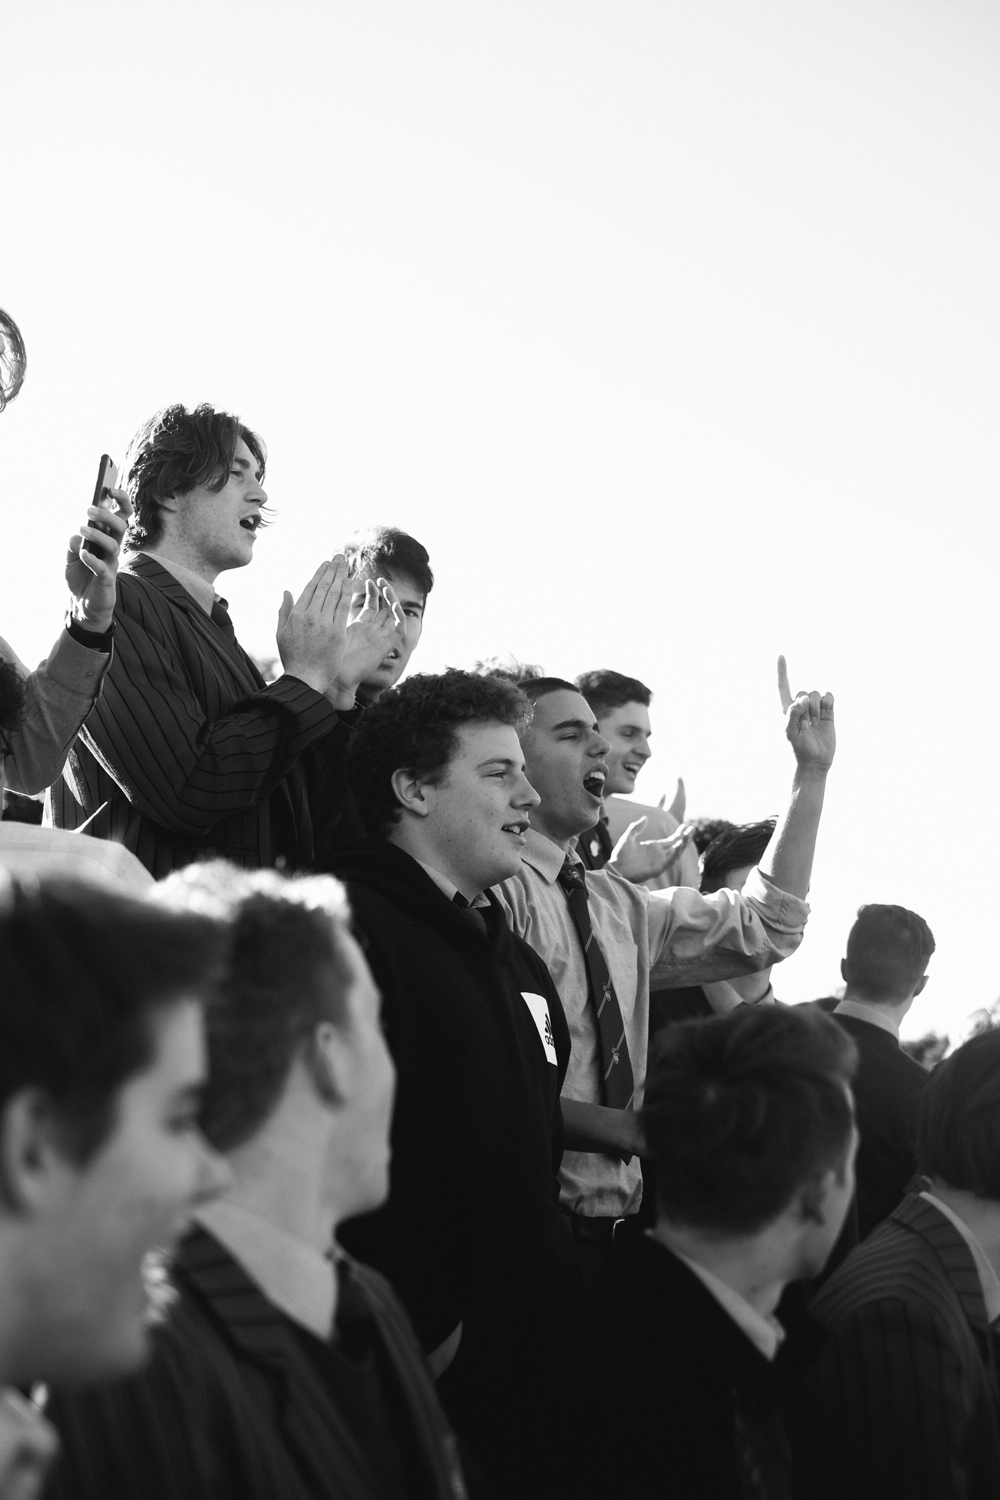 Scots College Supporters Club (SCSC) at rugby match, 2017